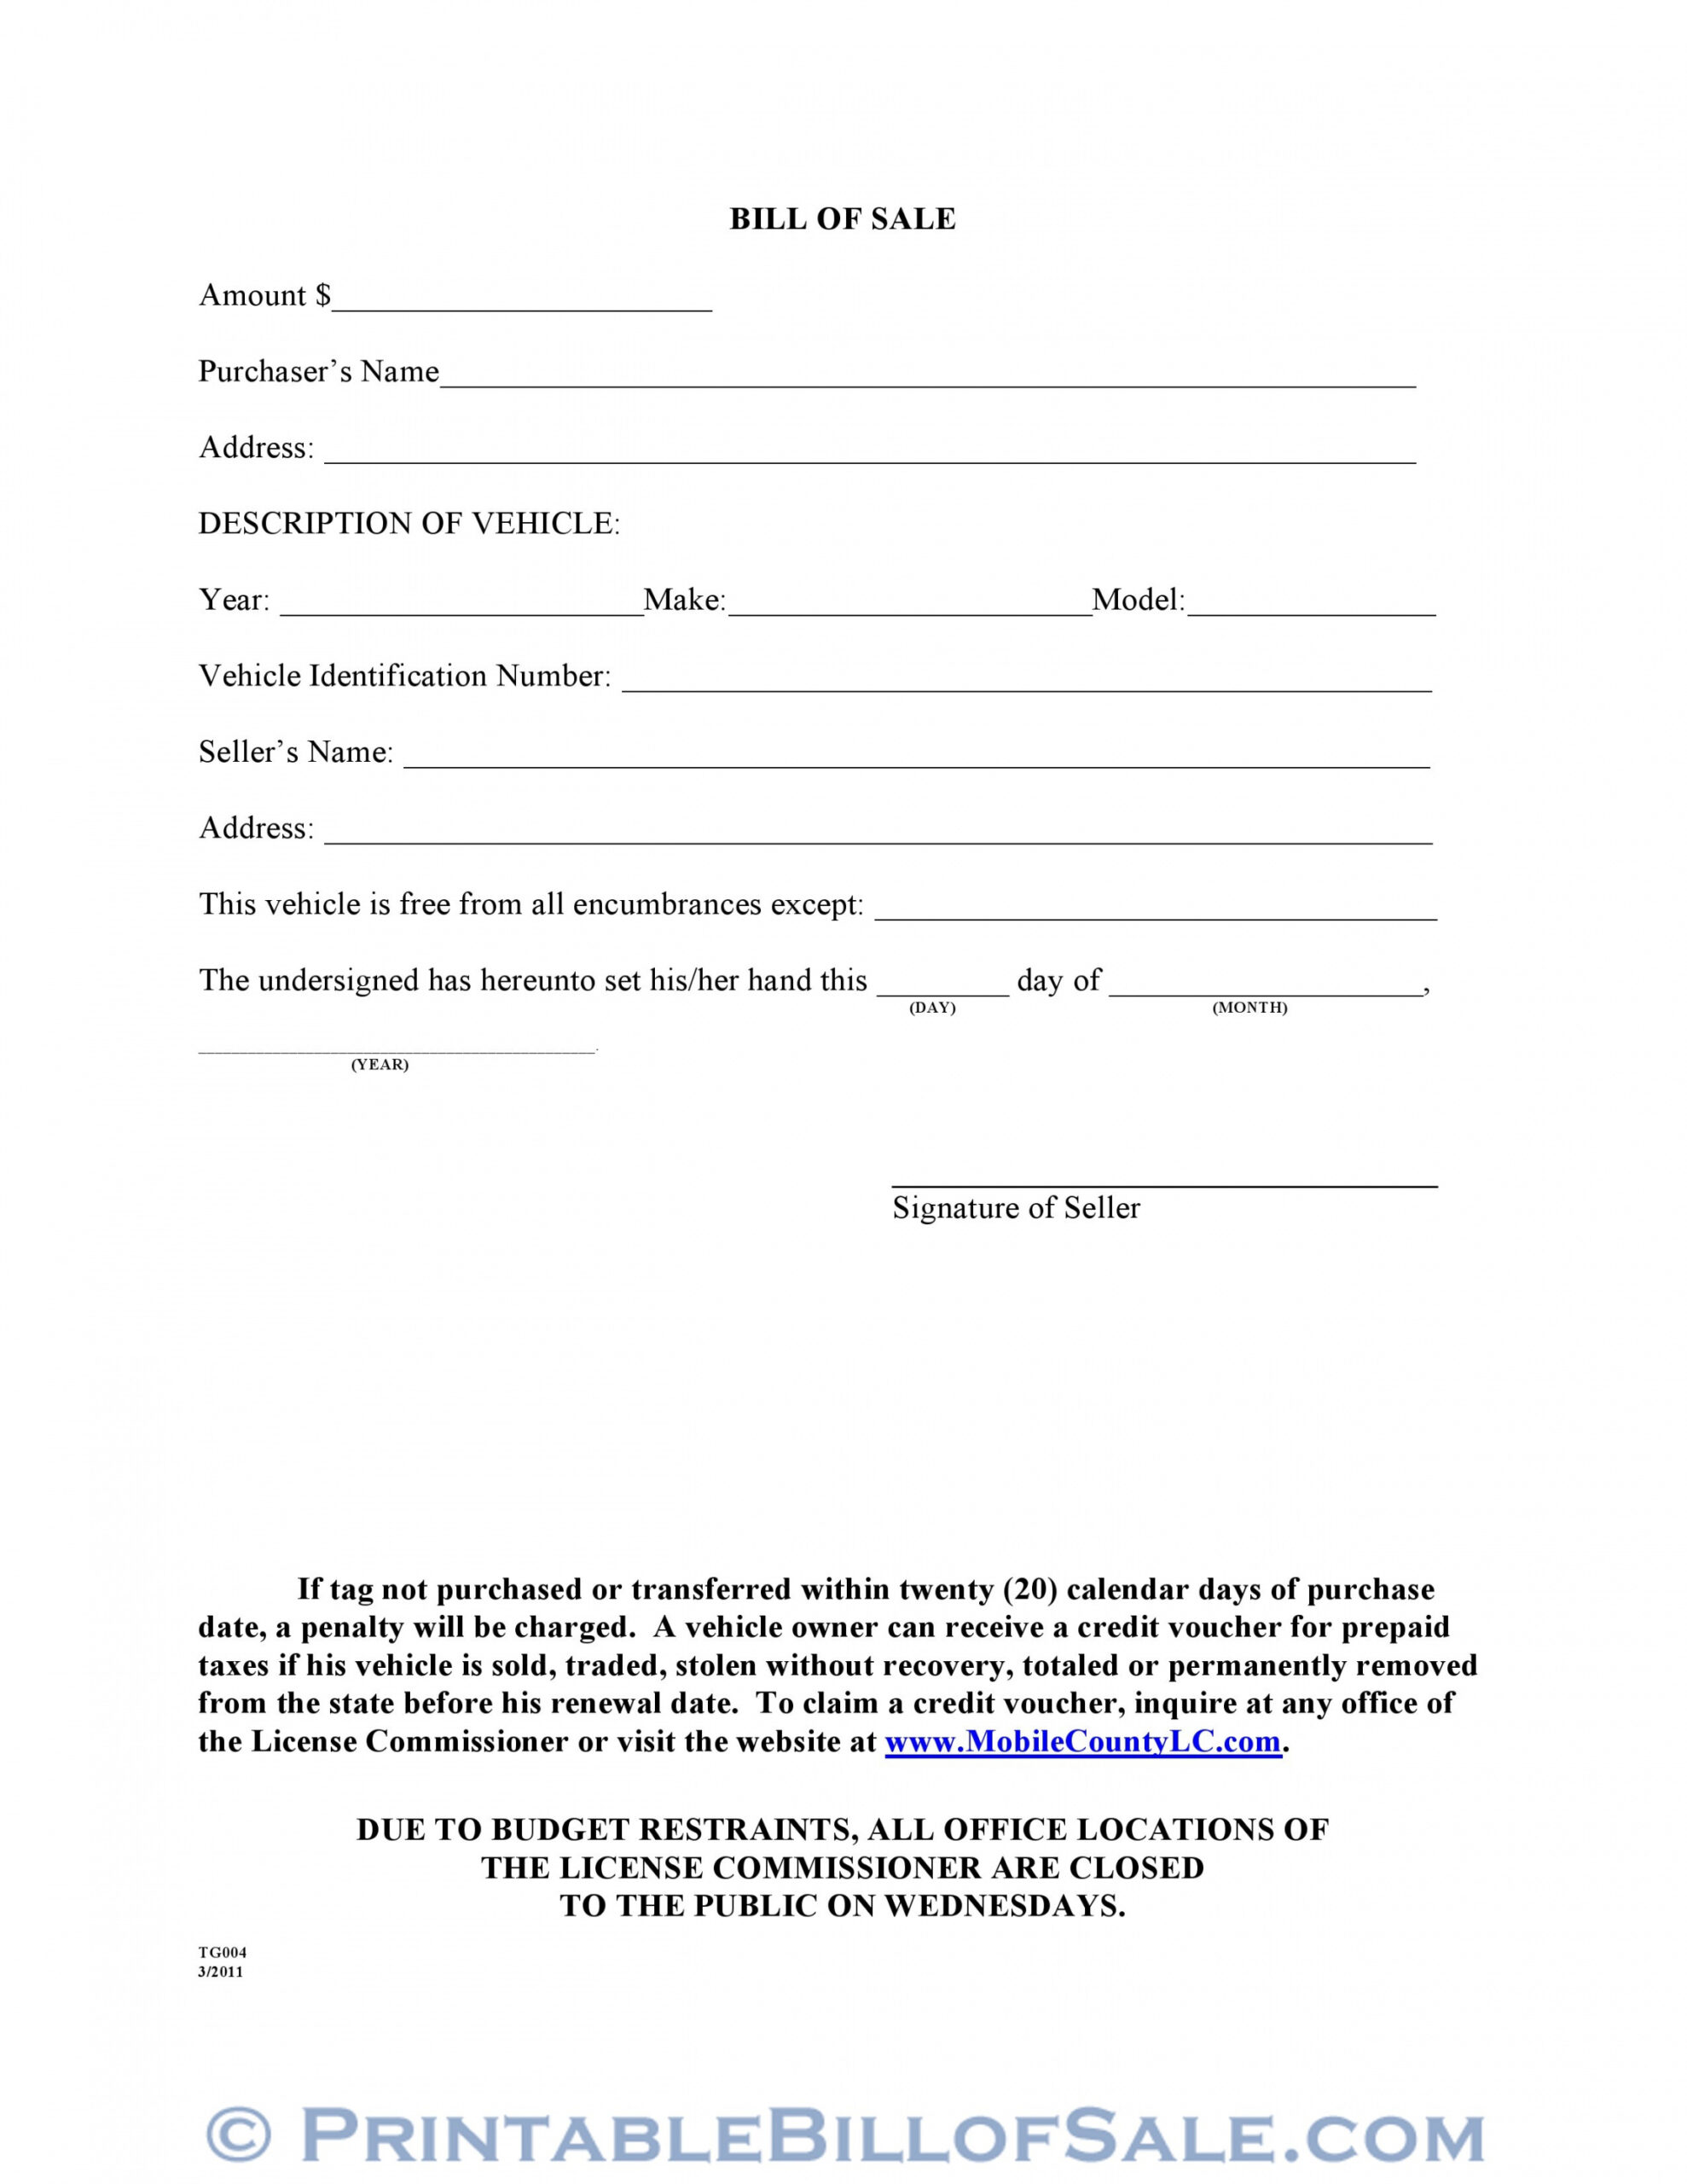 Free Mobile Home Bill Of Sale Template  Sample